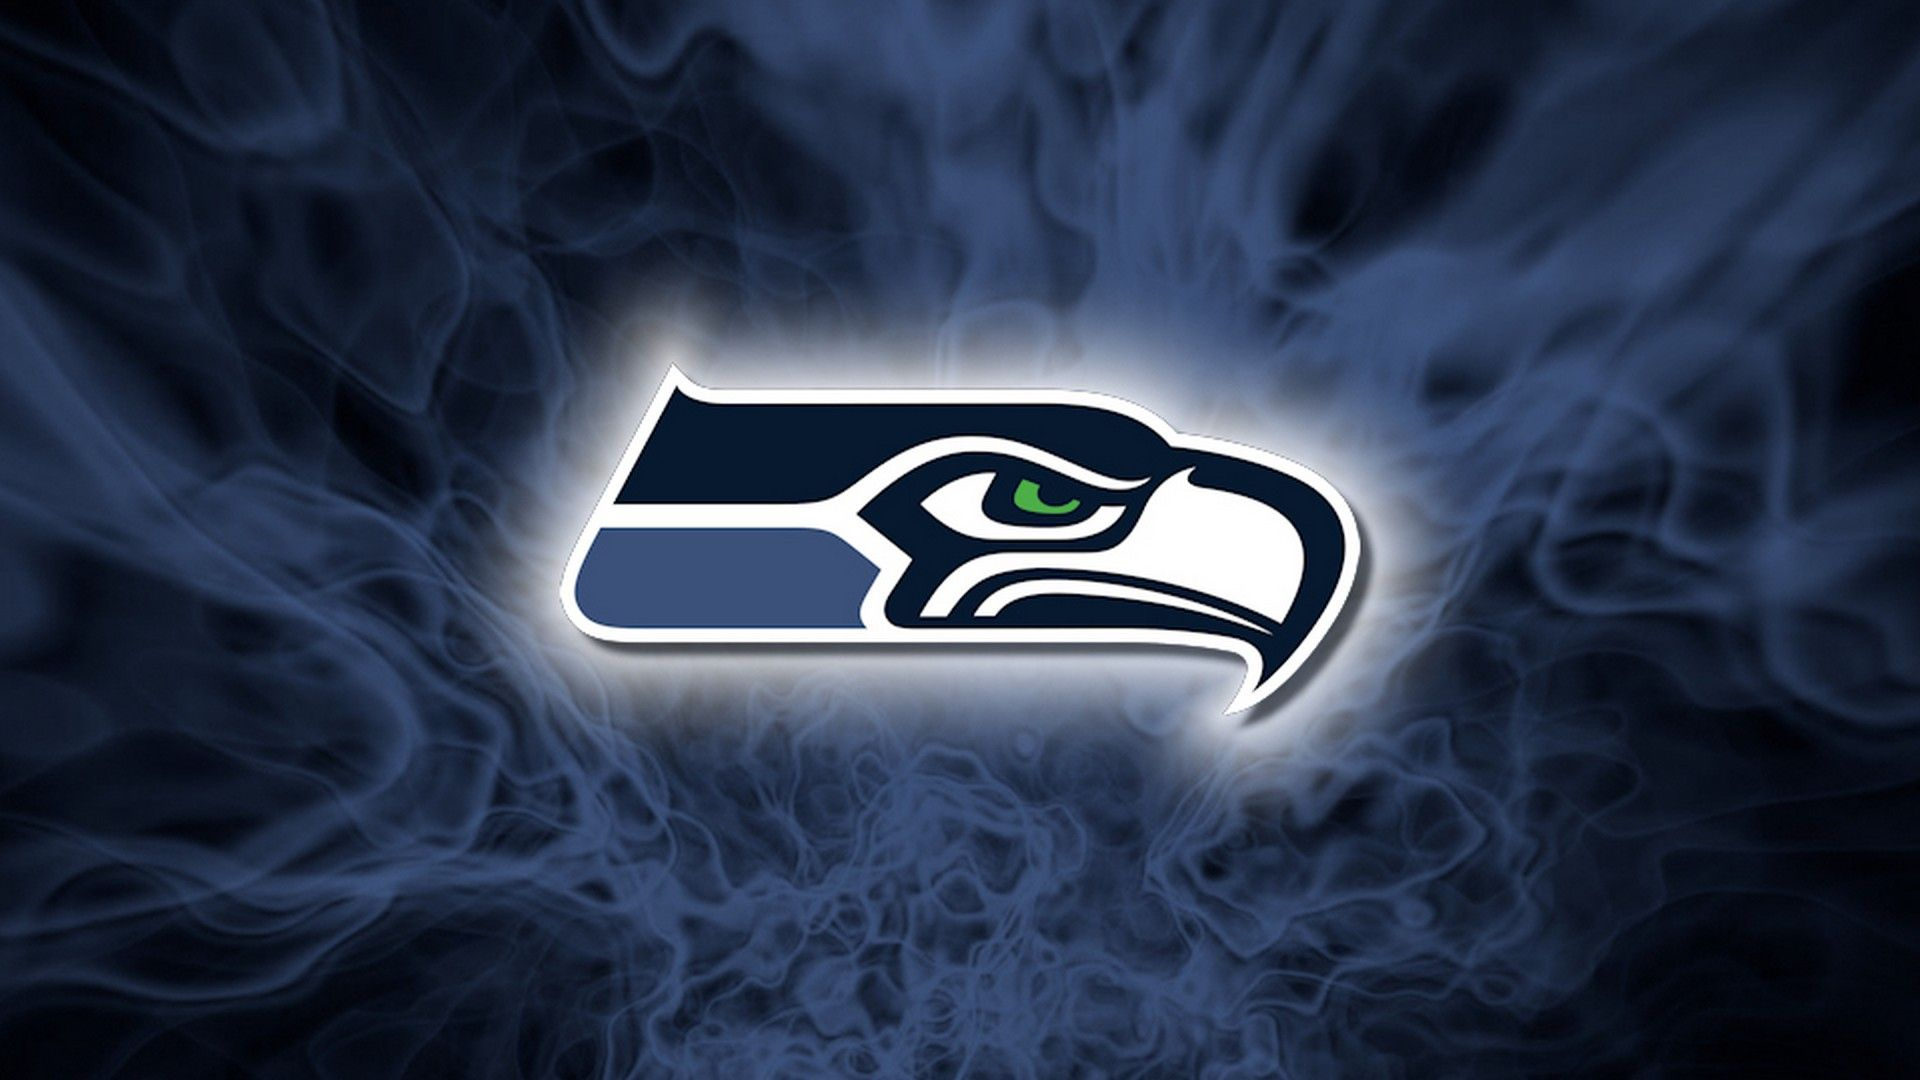 Wallpaper Desktop Seattle Seahawks HD Nfl football